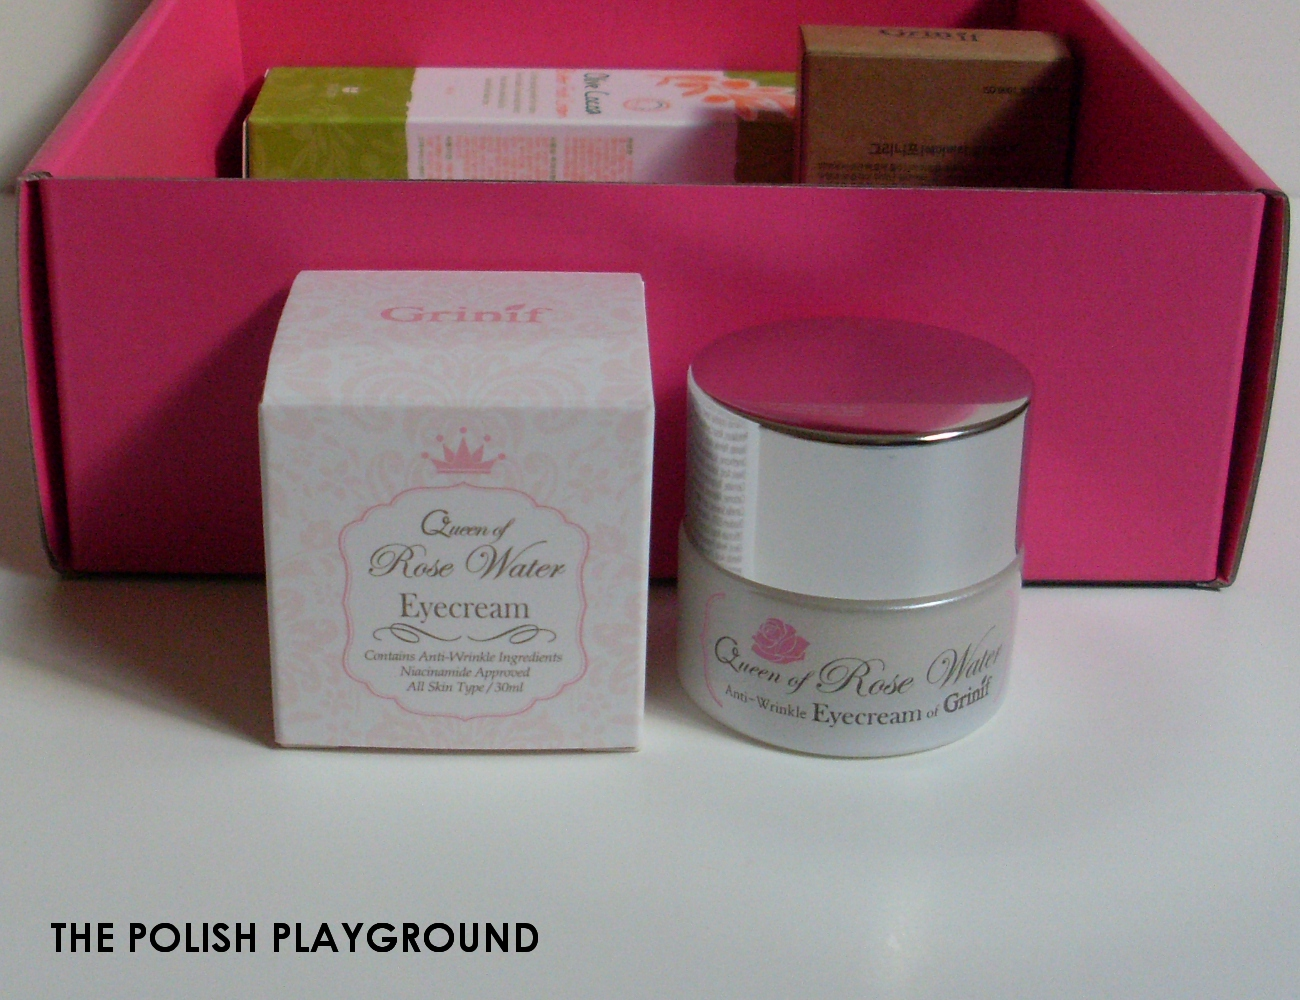 Memebox Superbox #76 While You Were Sleeping Unboxing - Grinif Queen of Rose Water Eye Cream